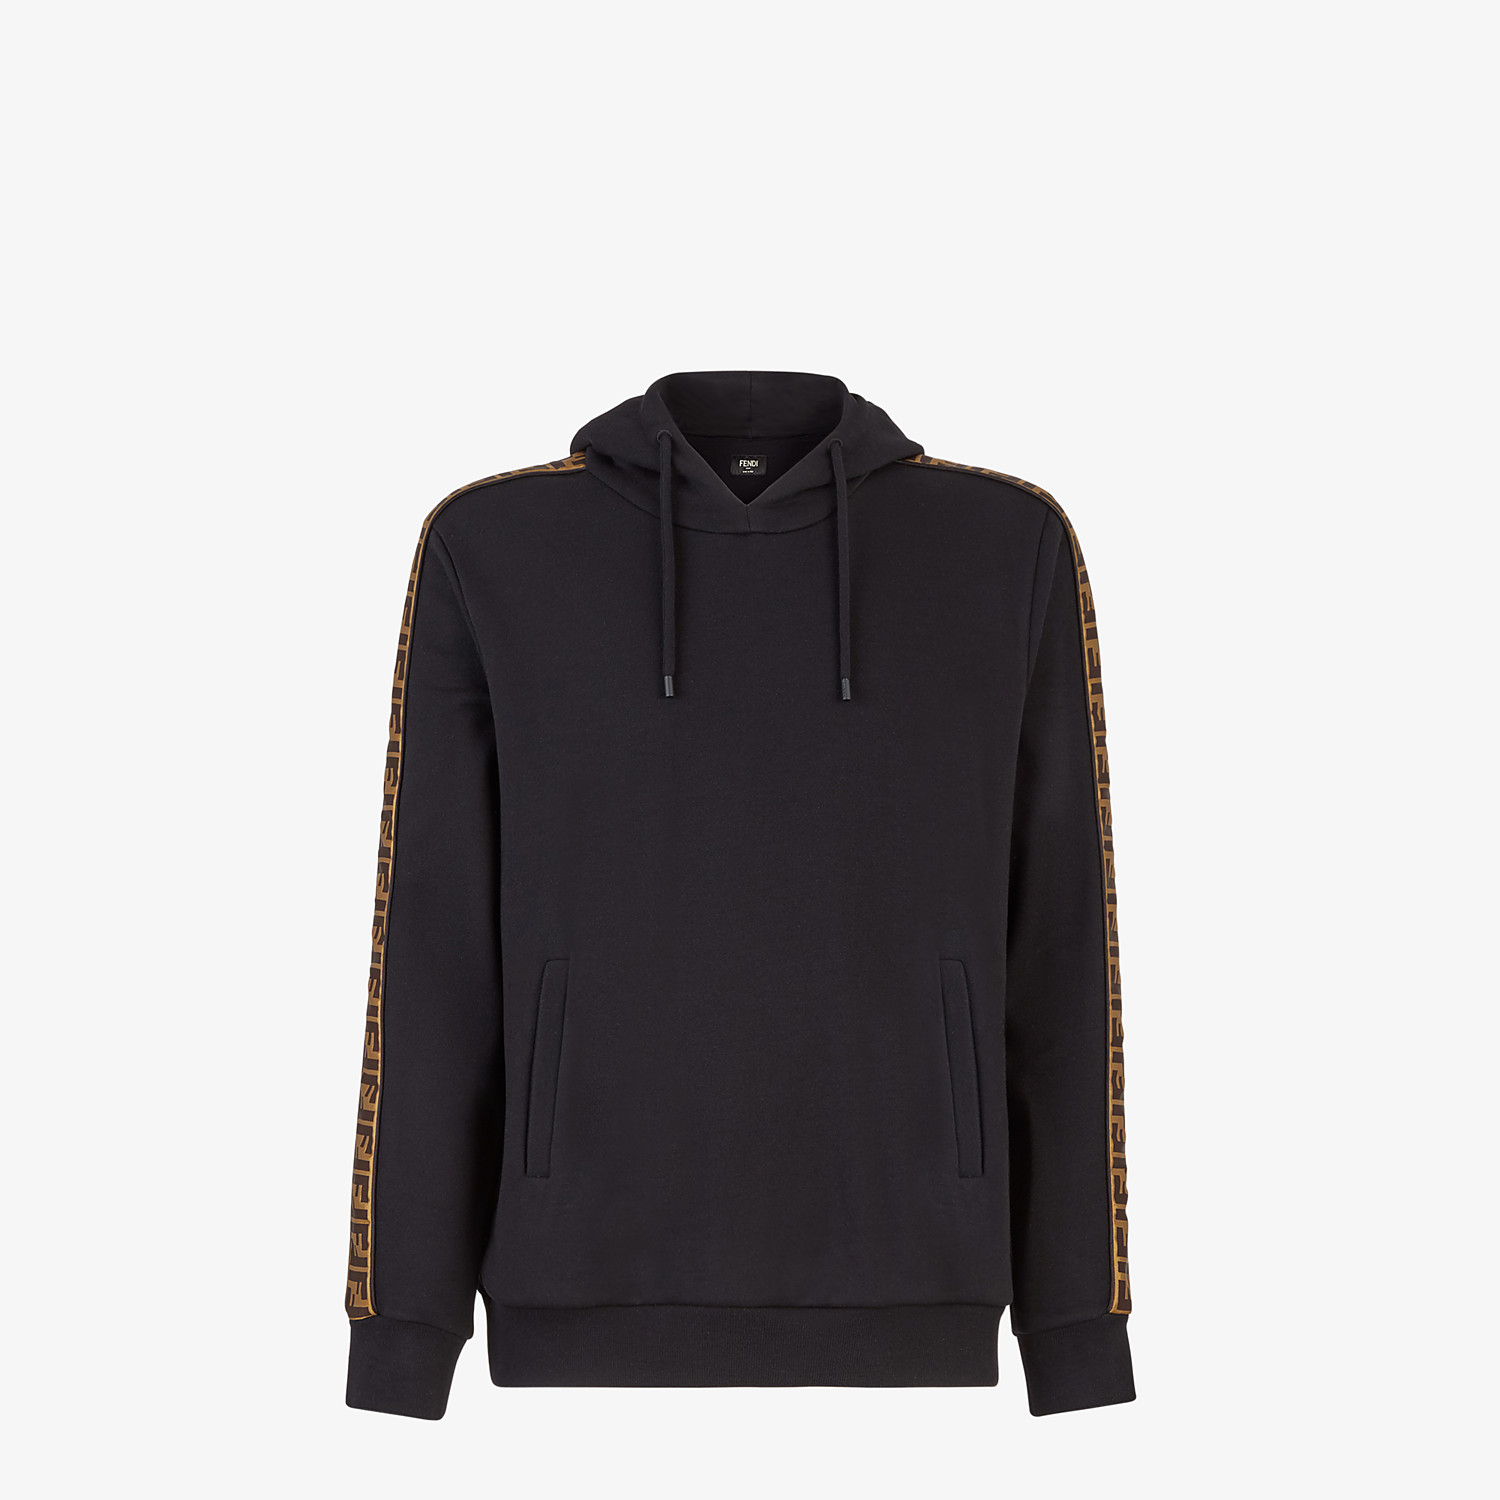 FENDI SWEATSHIRT - Black wool and cotton sweatshirt - view 1 detail